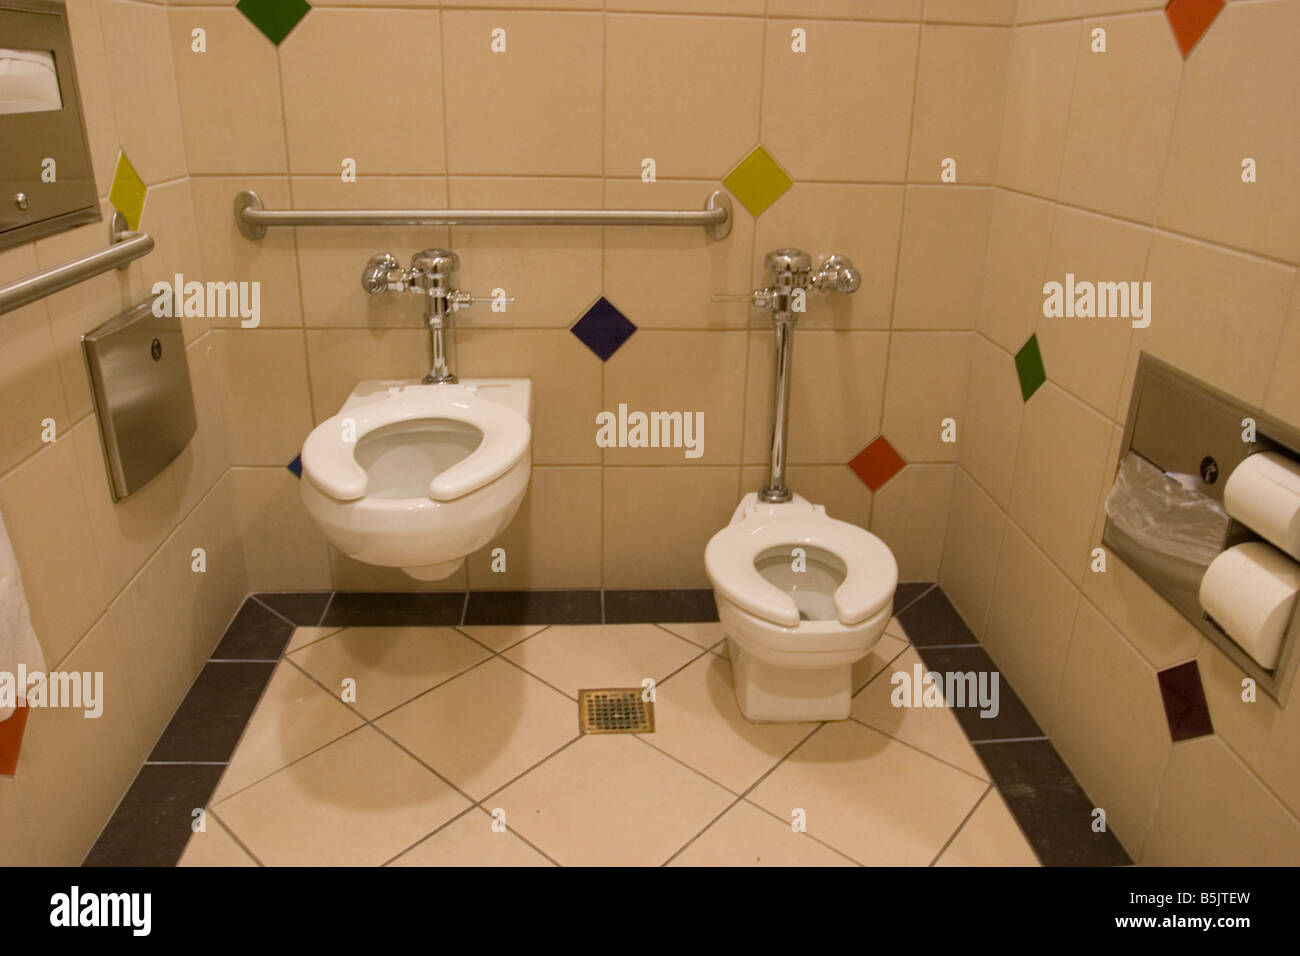 Public Bathroom Sink public bathroom stock photos & public bathroom stock images - alamy